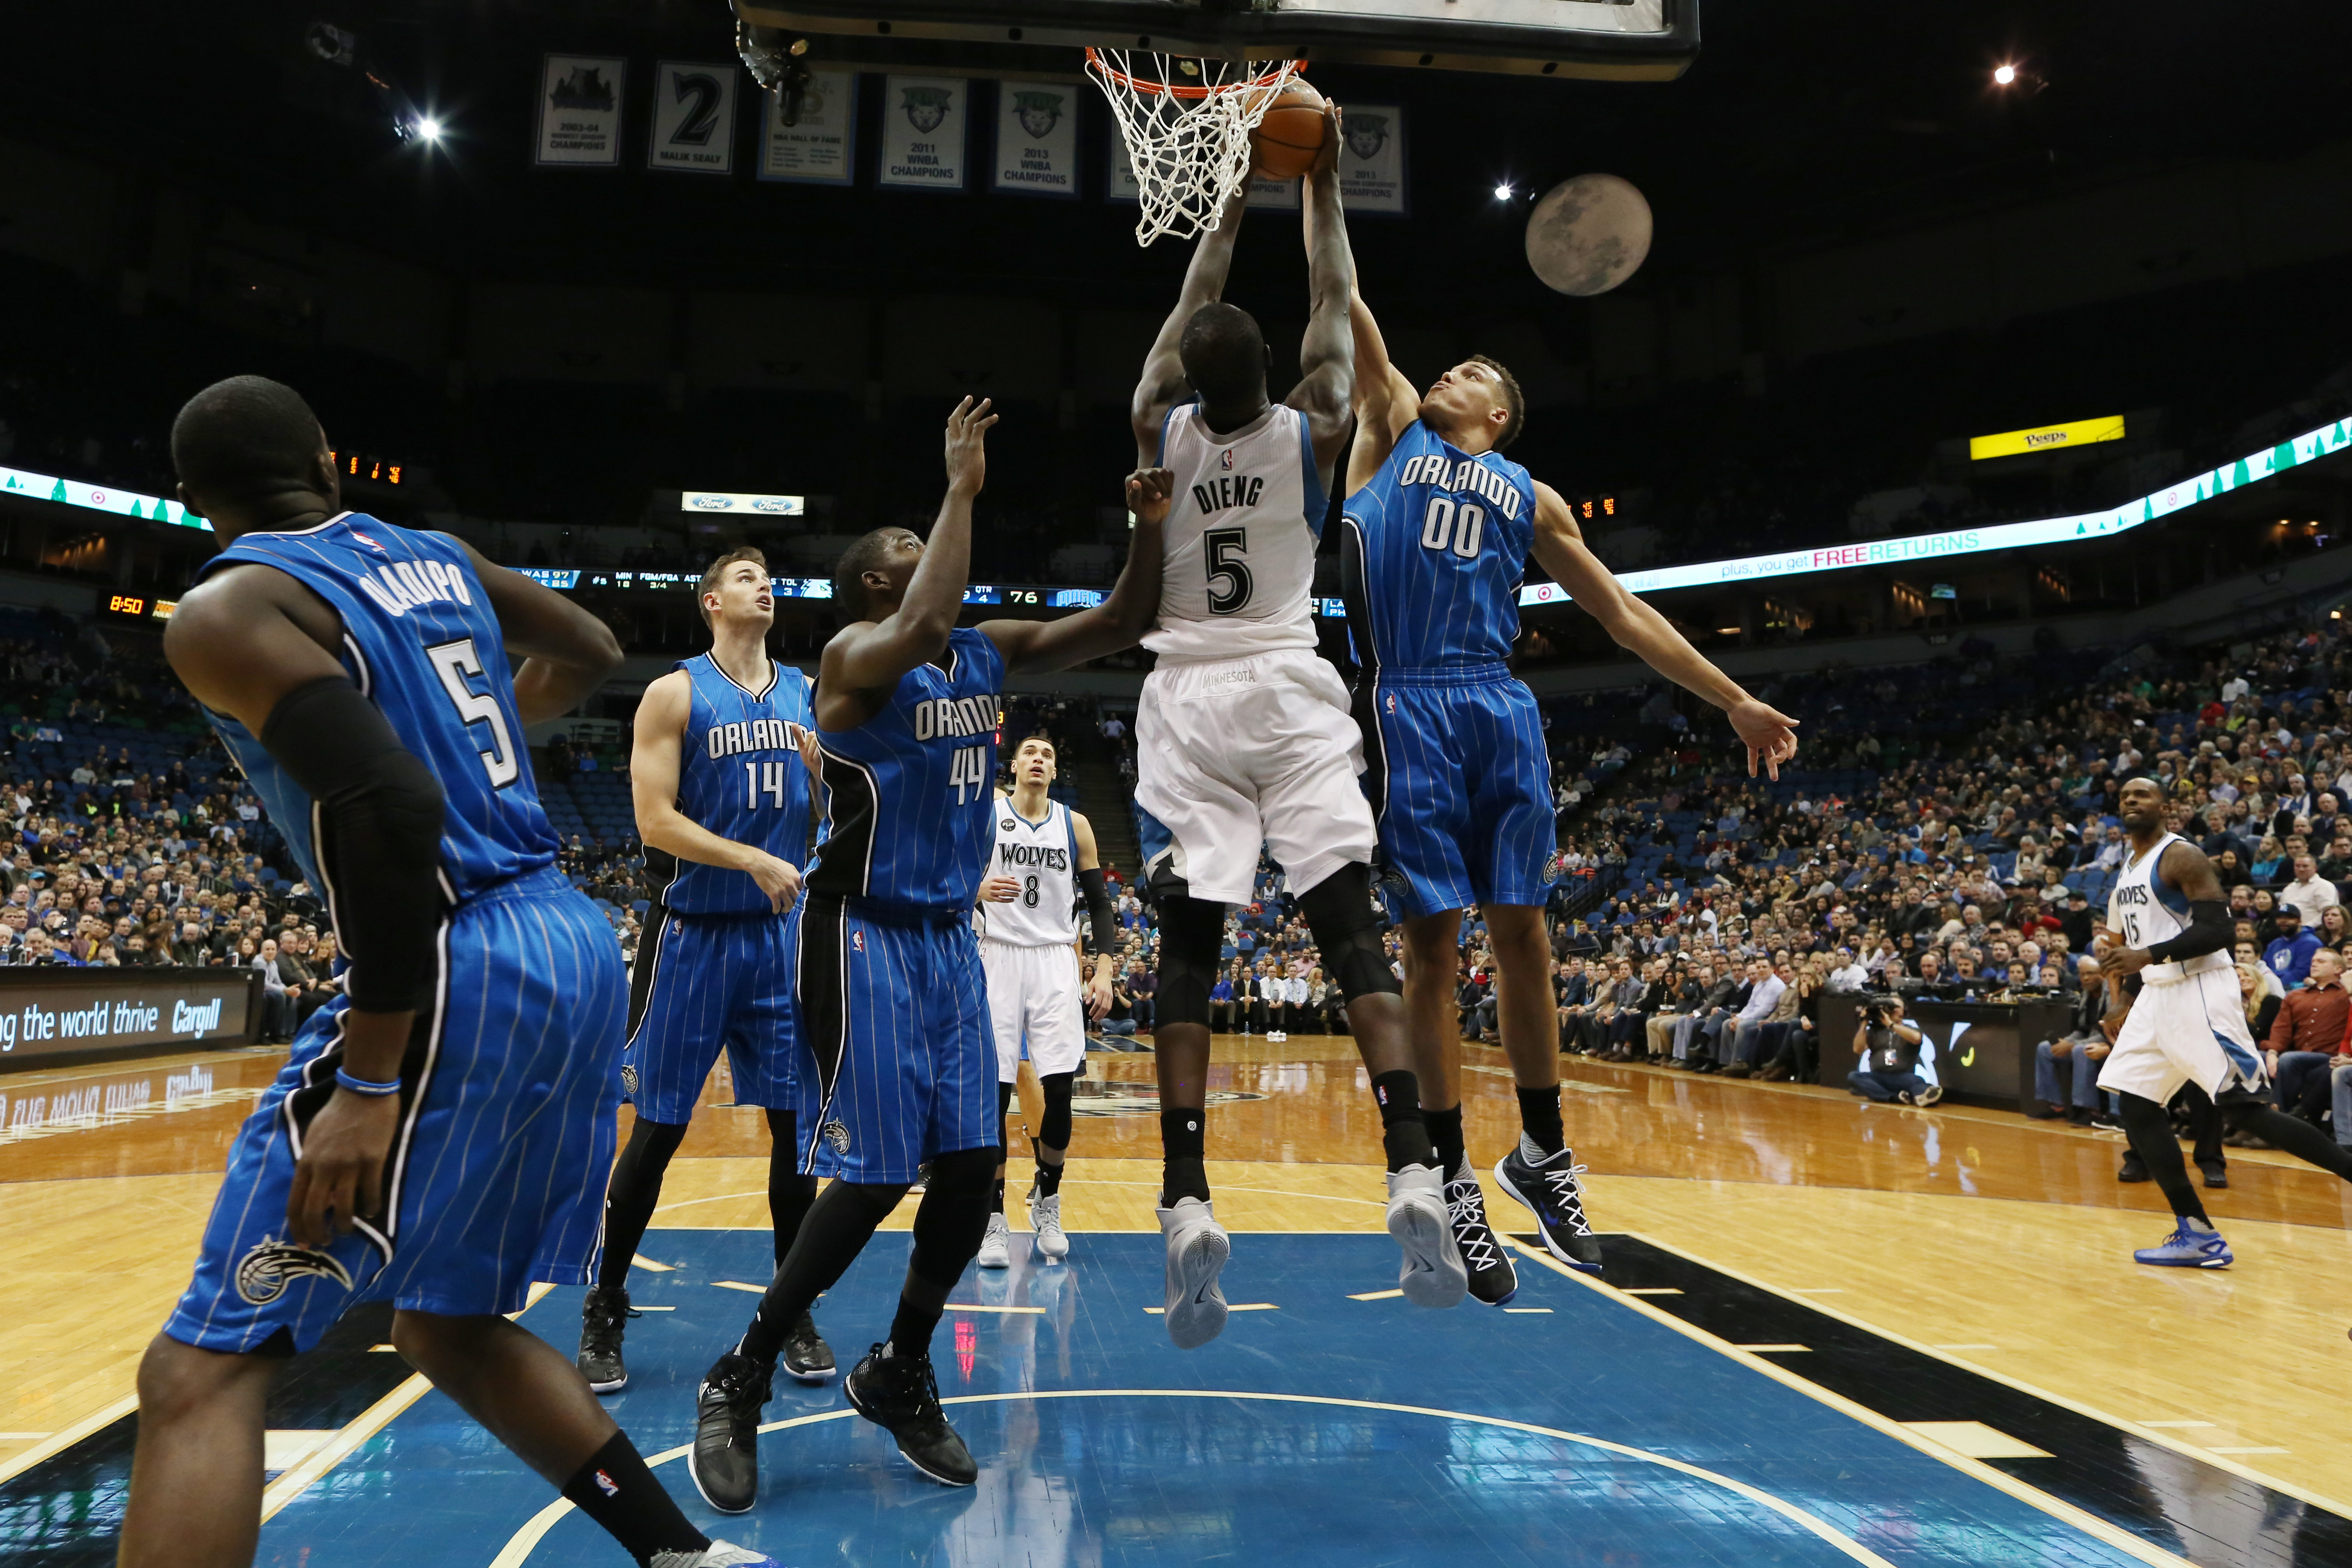 MINNEAPOLIS, MN - DECEMBER 1: Aaron Gordon #00 of the Orlando Magic dunks against Gorgui Dieng #5 of the Minnesota Timberwolves during the game on December 1, 2015 at Target Center Minneapolis, Minnesota. (Photo by Jordan Johnson/NBAE via Getty Images)